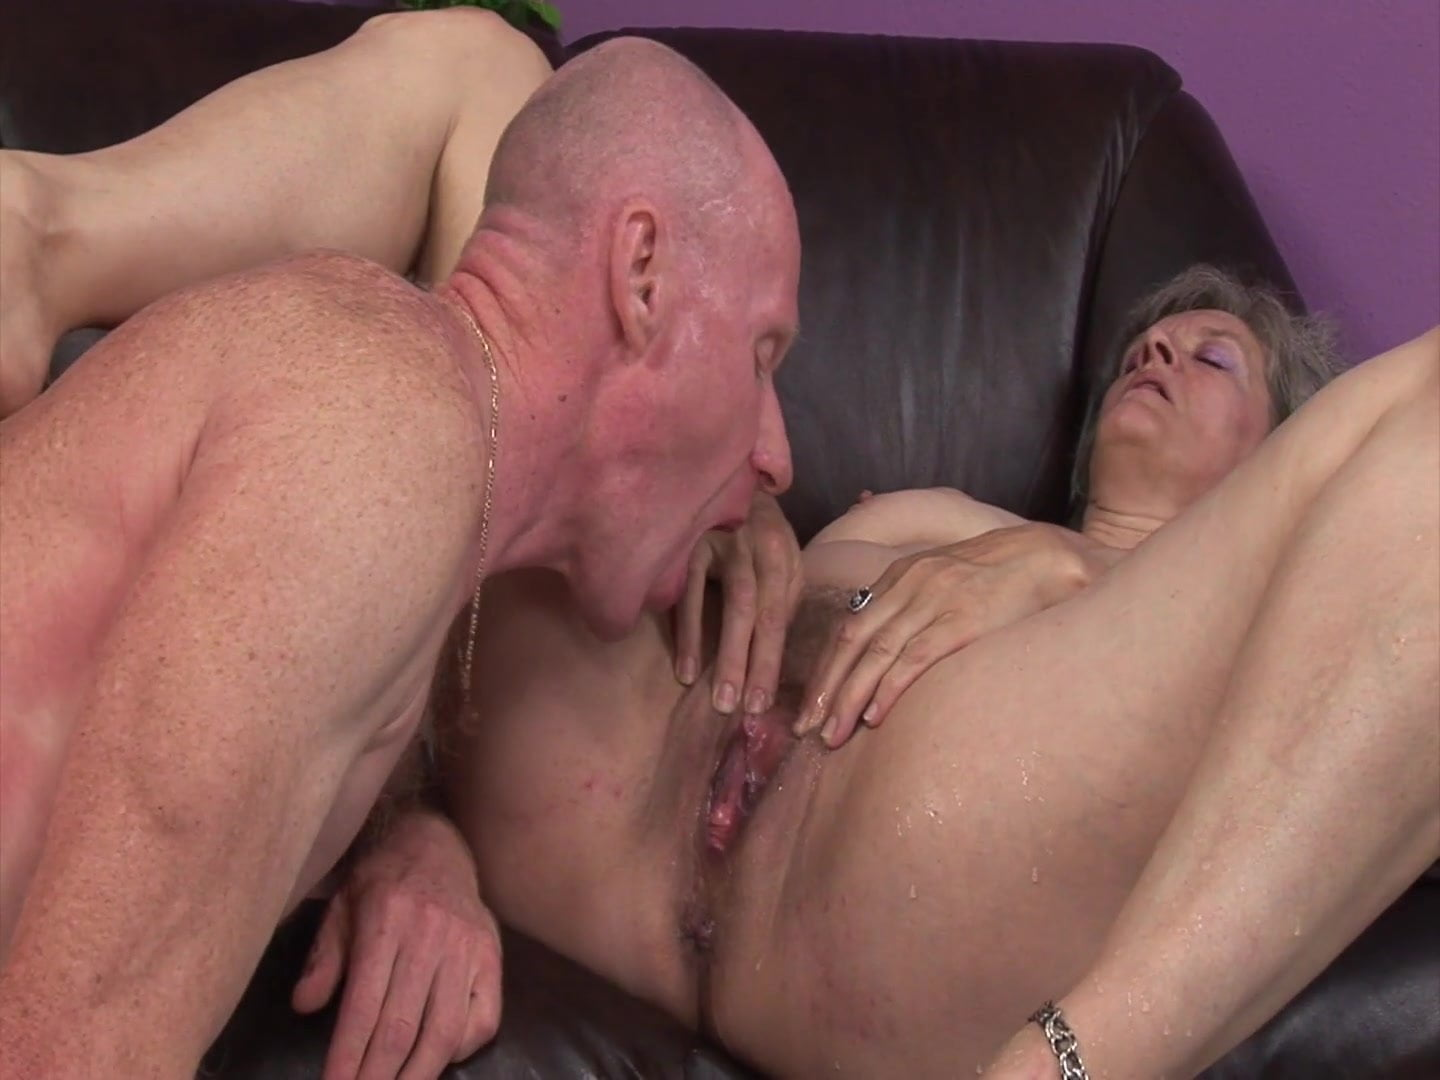 Older slut gets slammed in her crusty old cunt